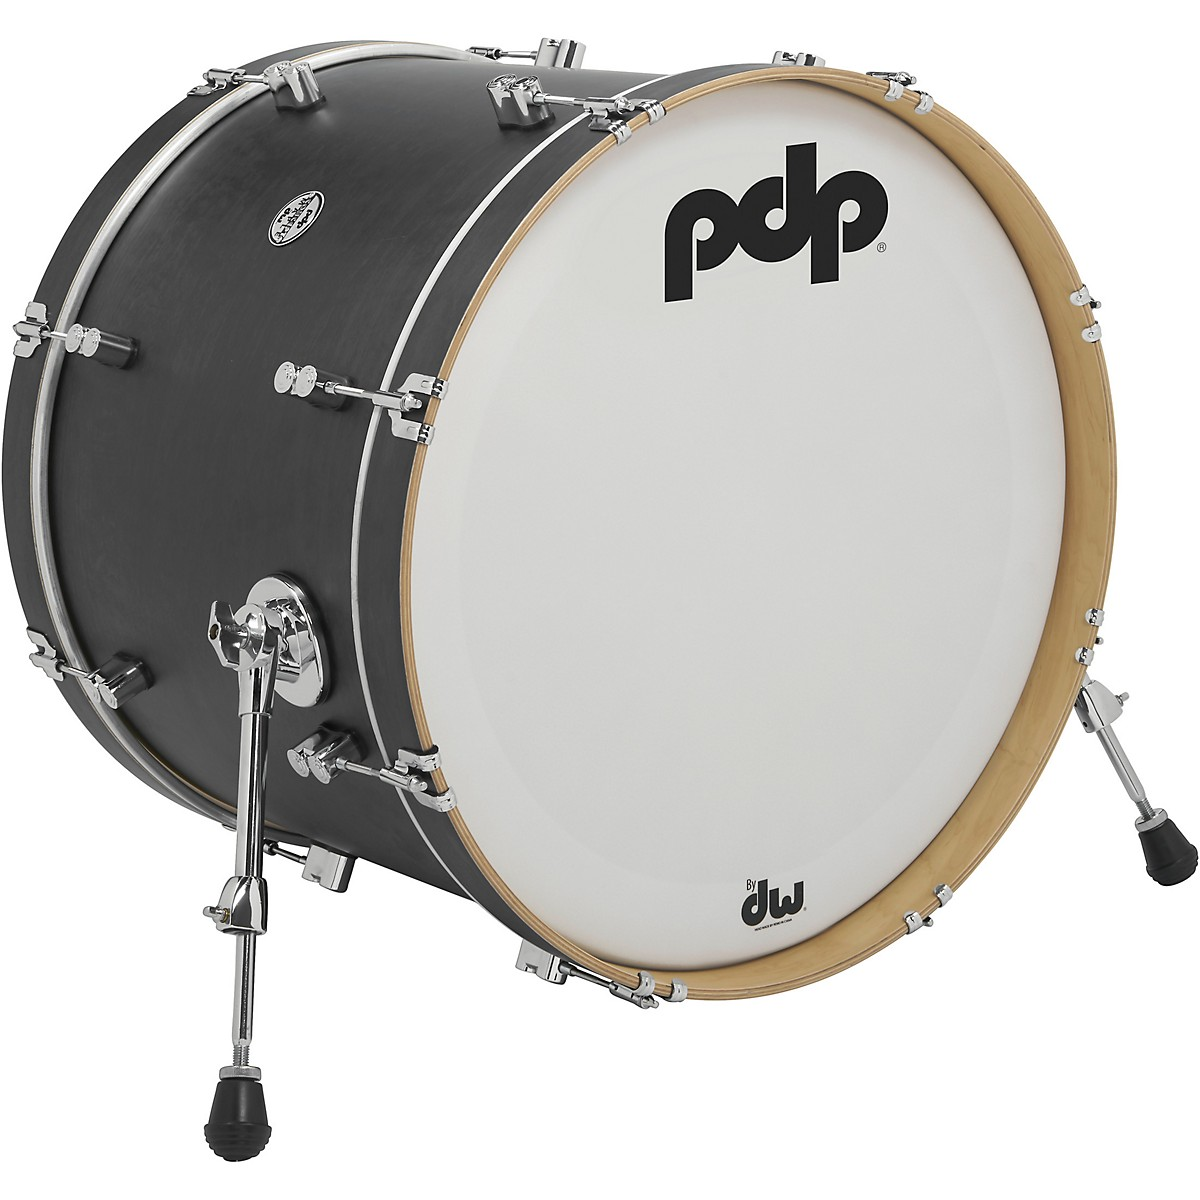 PDP by DW Concept Series Classic Wood Hoop Bass Drum